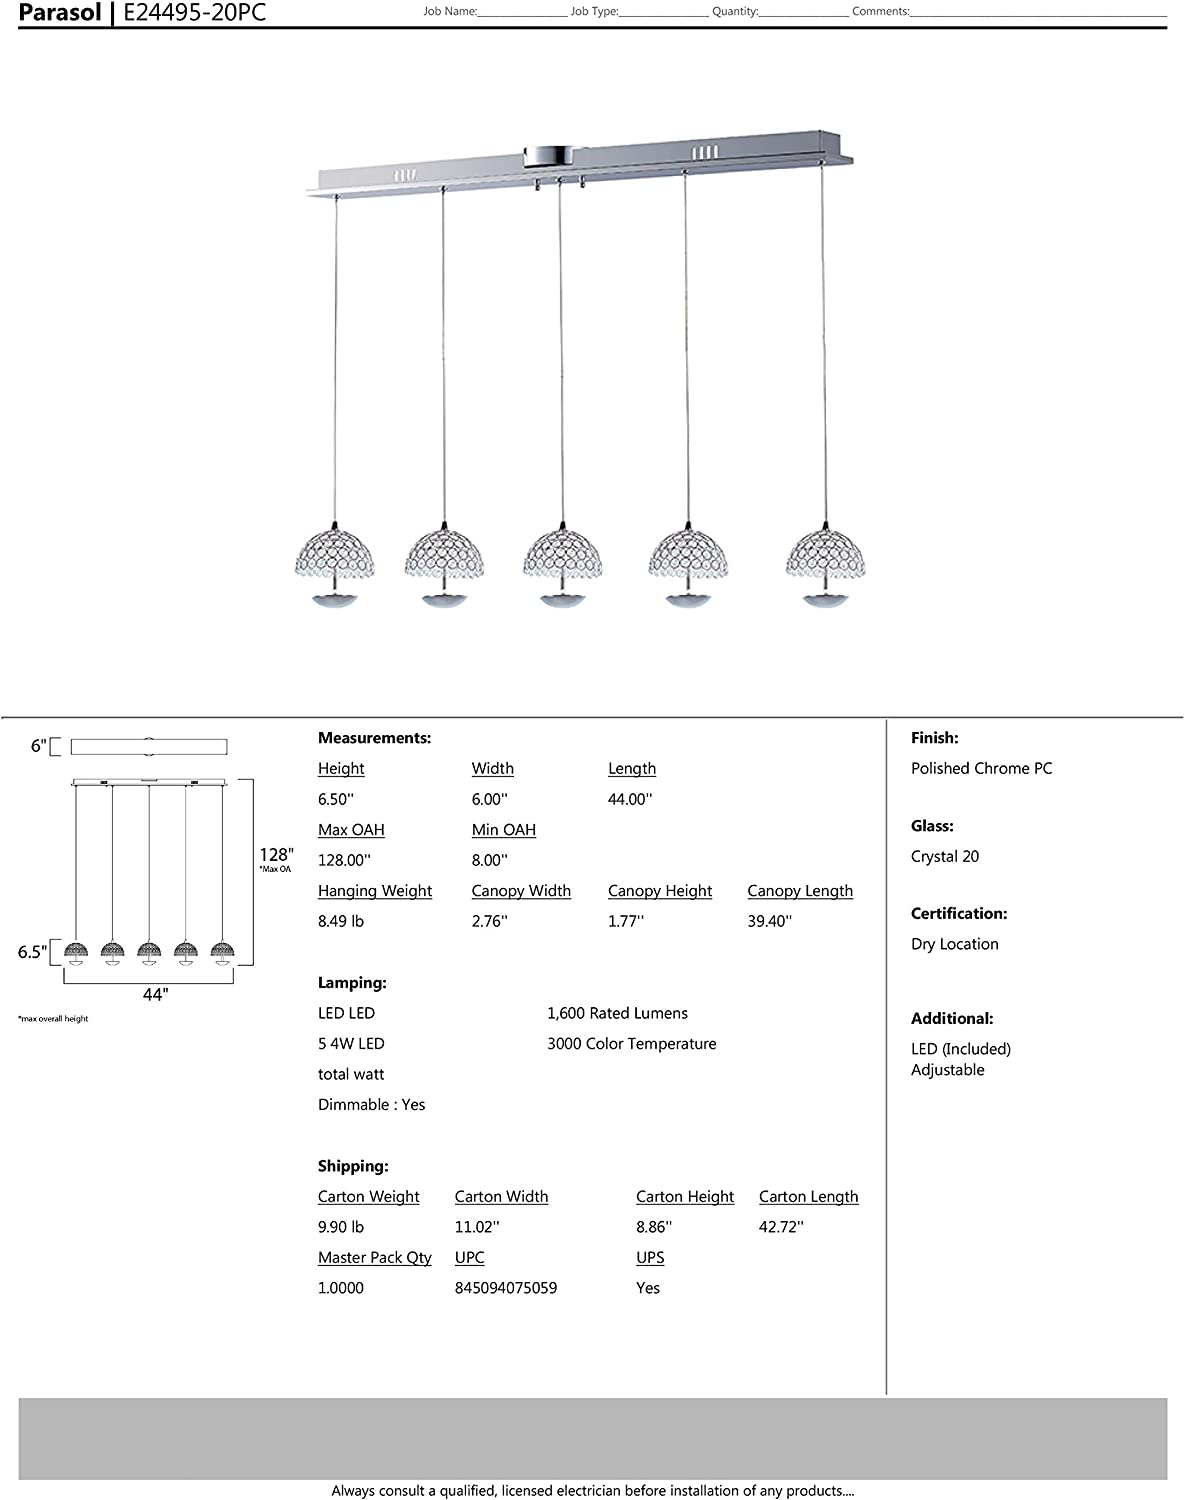 Dry Safety Rated Rated Lumens Low-Voltage Electronic Dimmer Shade Material ET2 E24495-20PC Parasol 5-Light LED Multi-Light Pendant LED Bulb Crystal Glass 6W Max. Polished Chrome Finish